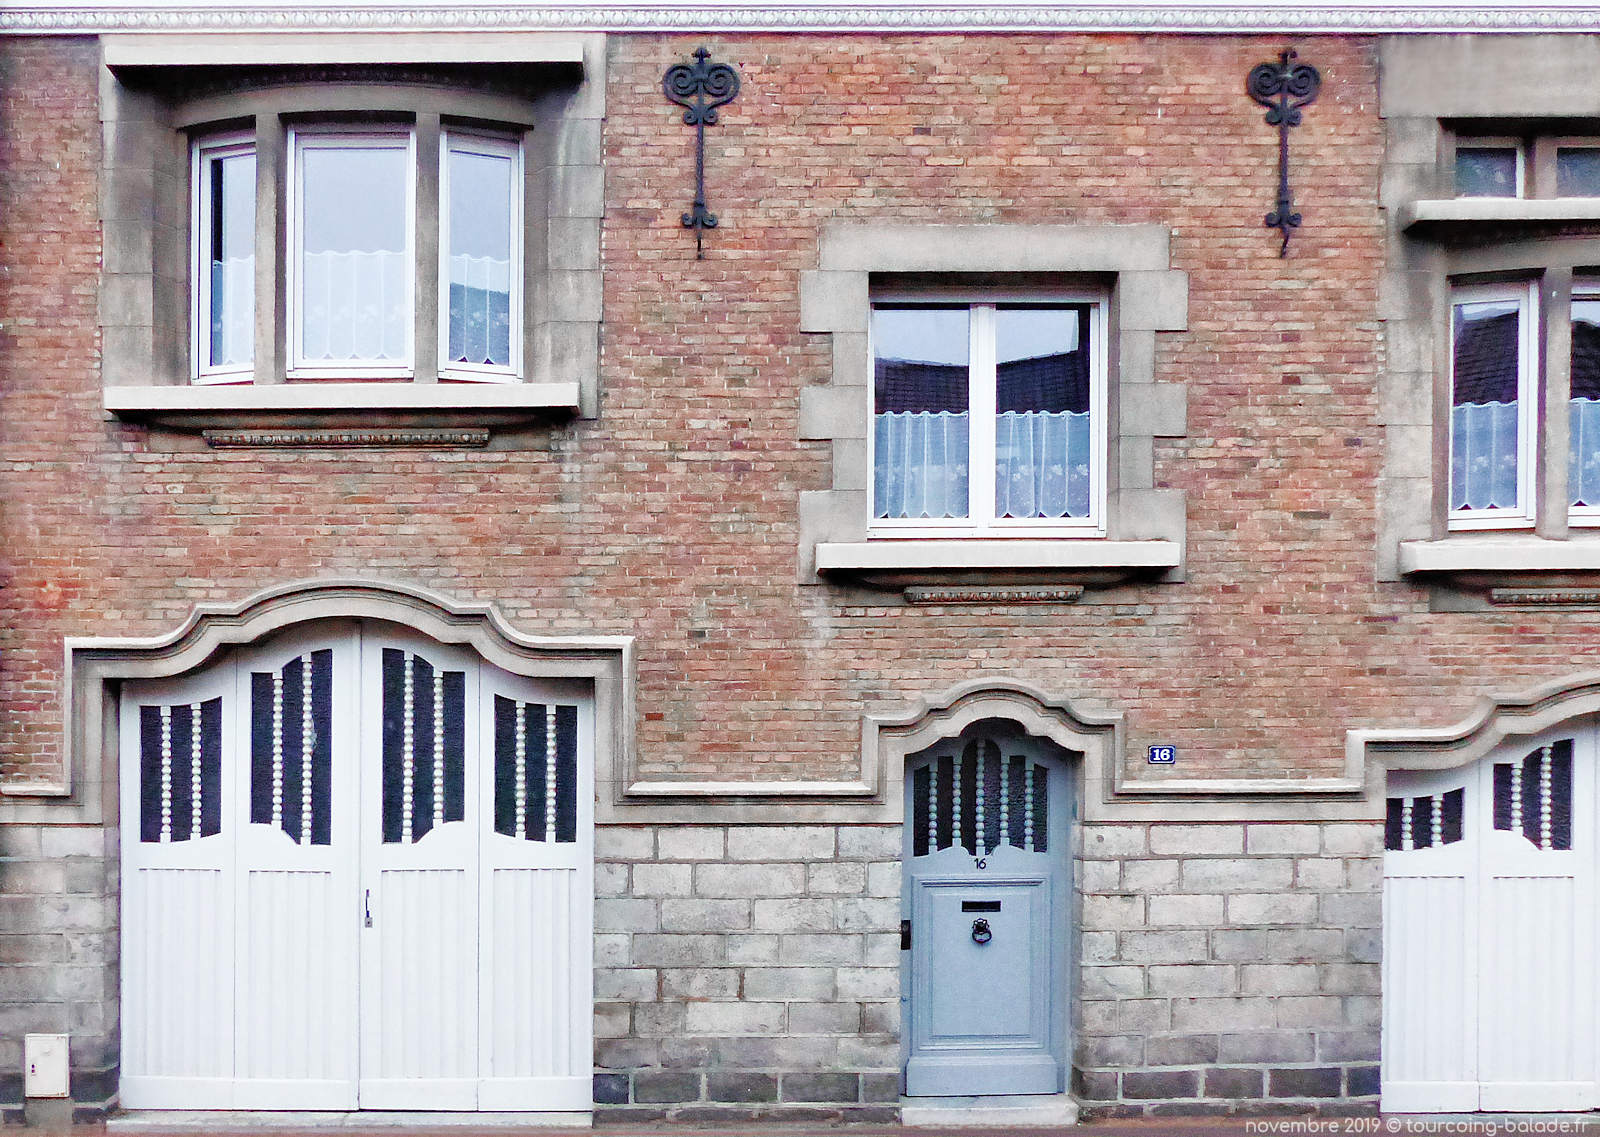 Ancres architecturales Tourcoing - Rue Boule d'Or.